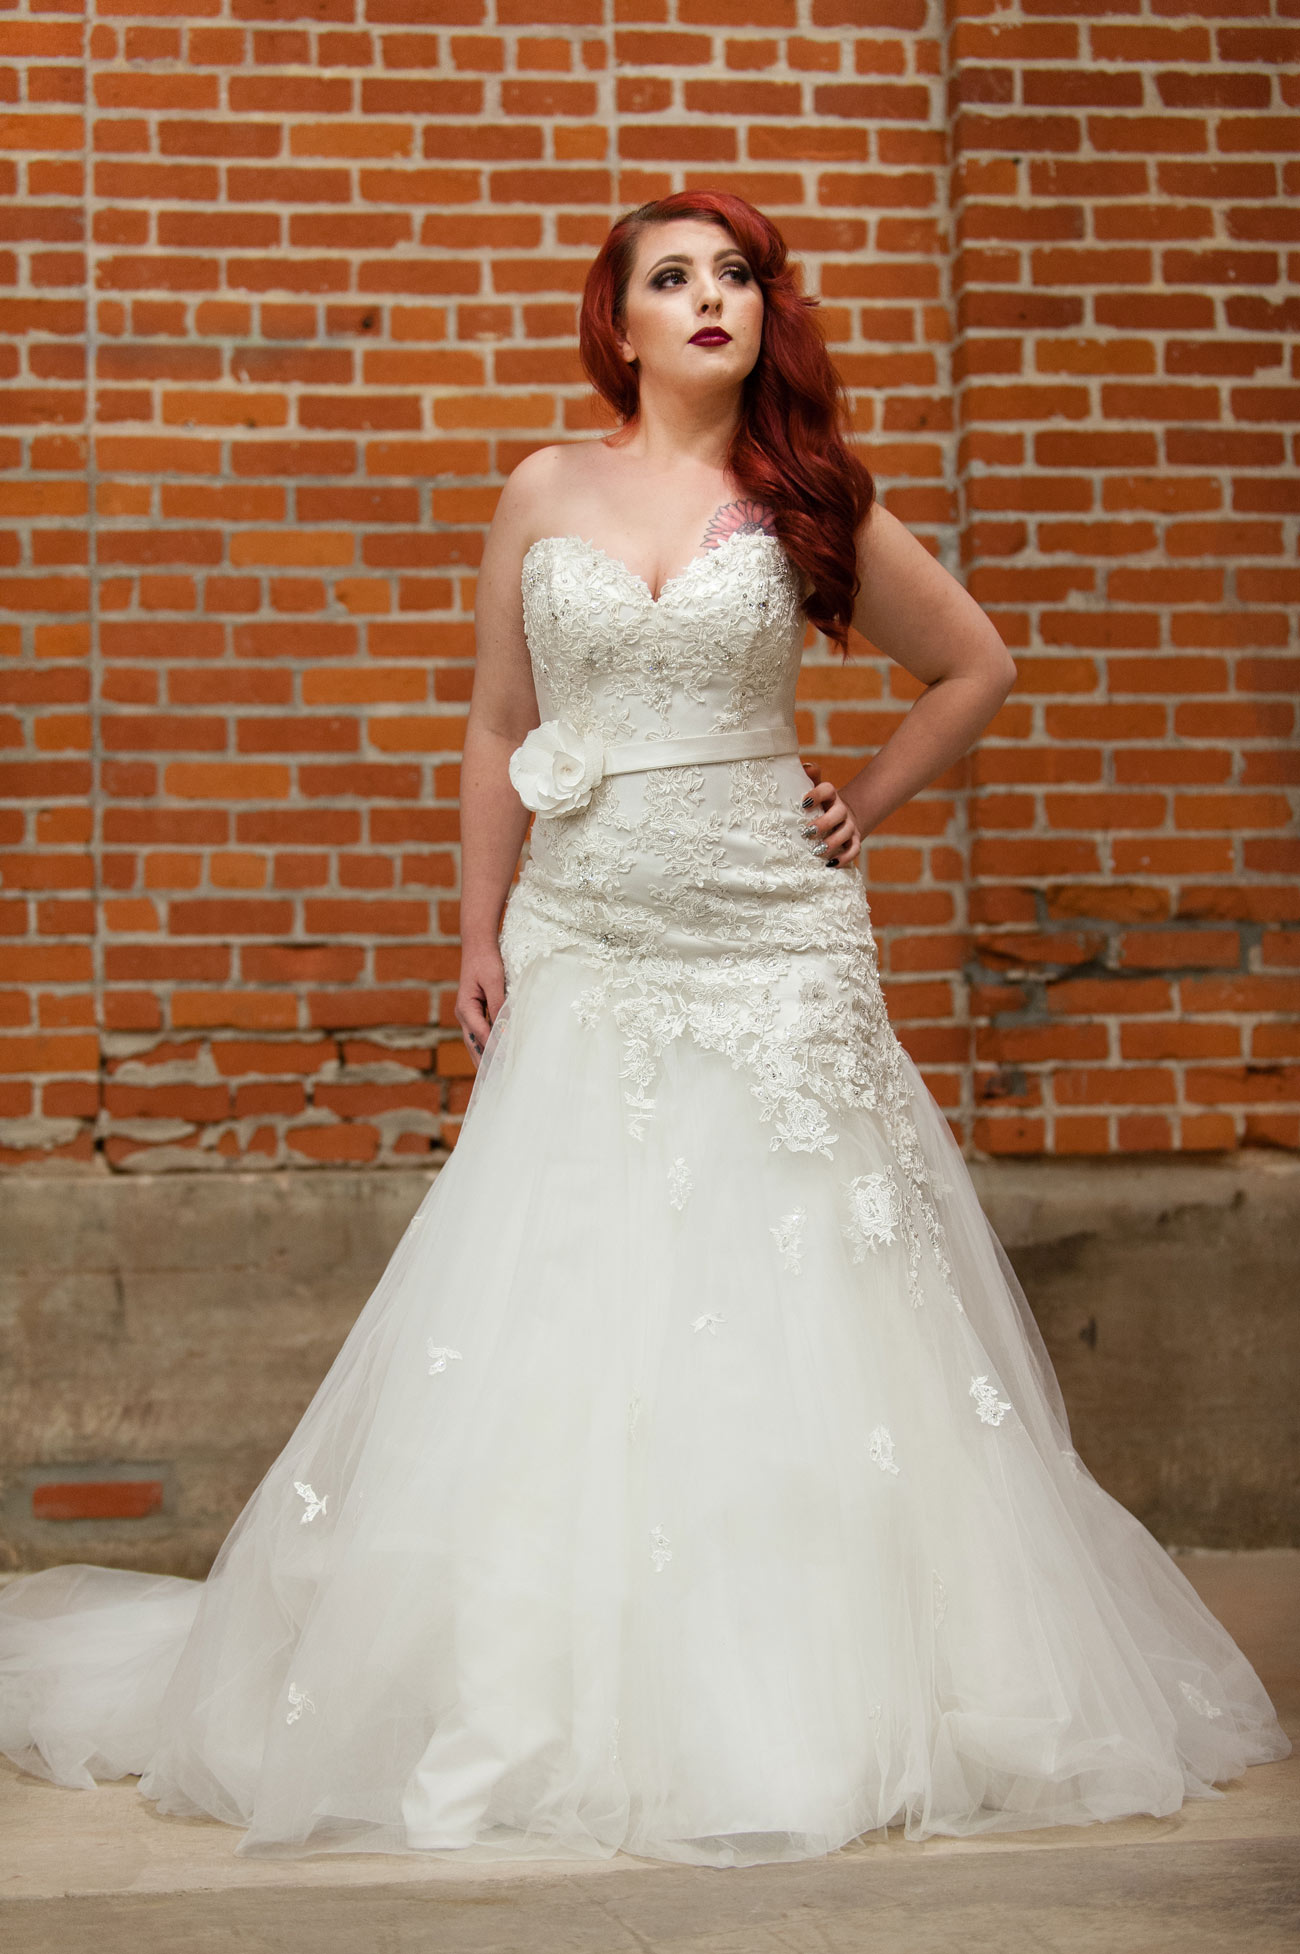 Buyer Beware: Knock-Off Wedding Gowns • Sacbride.com